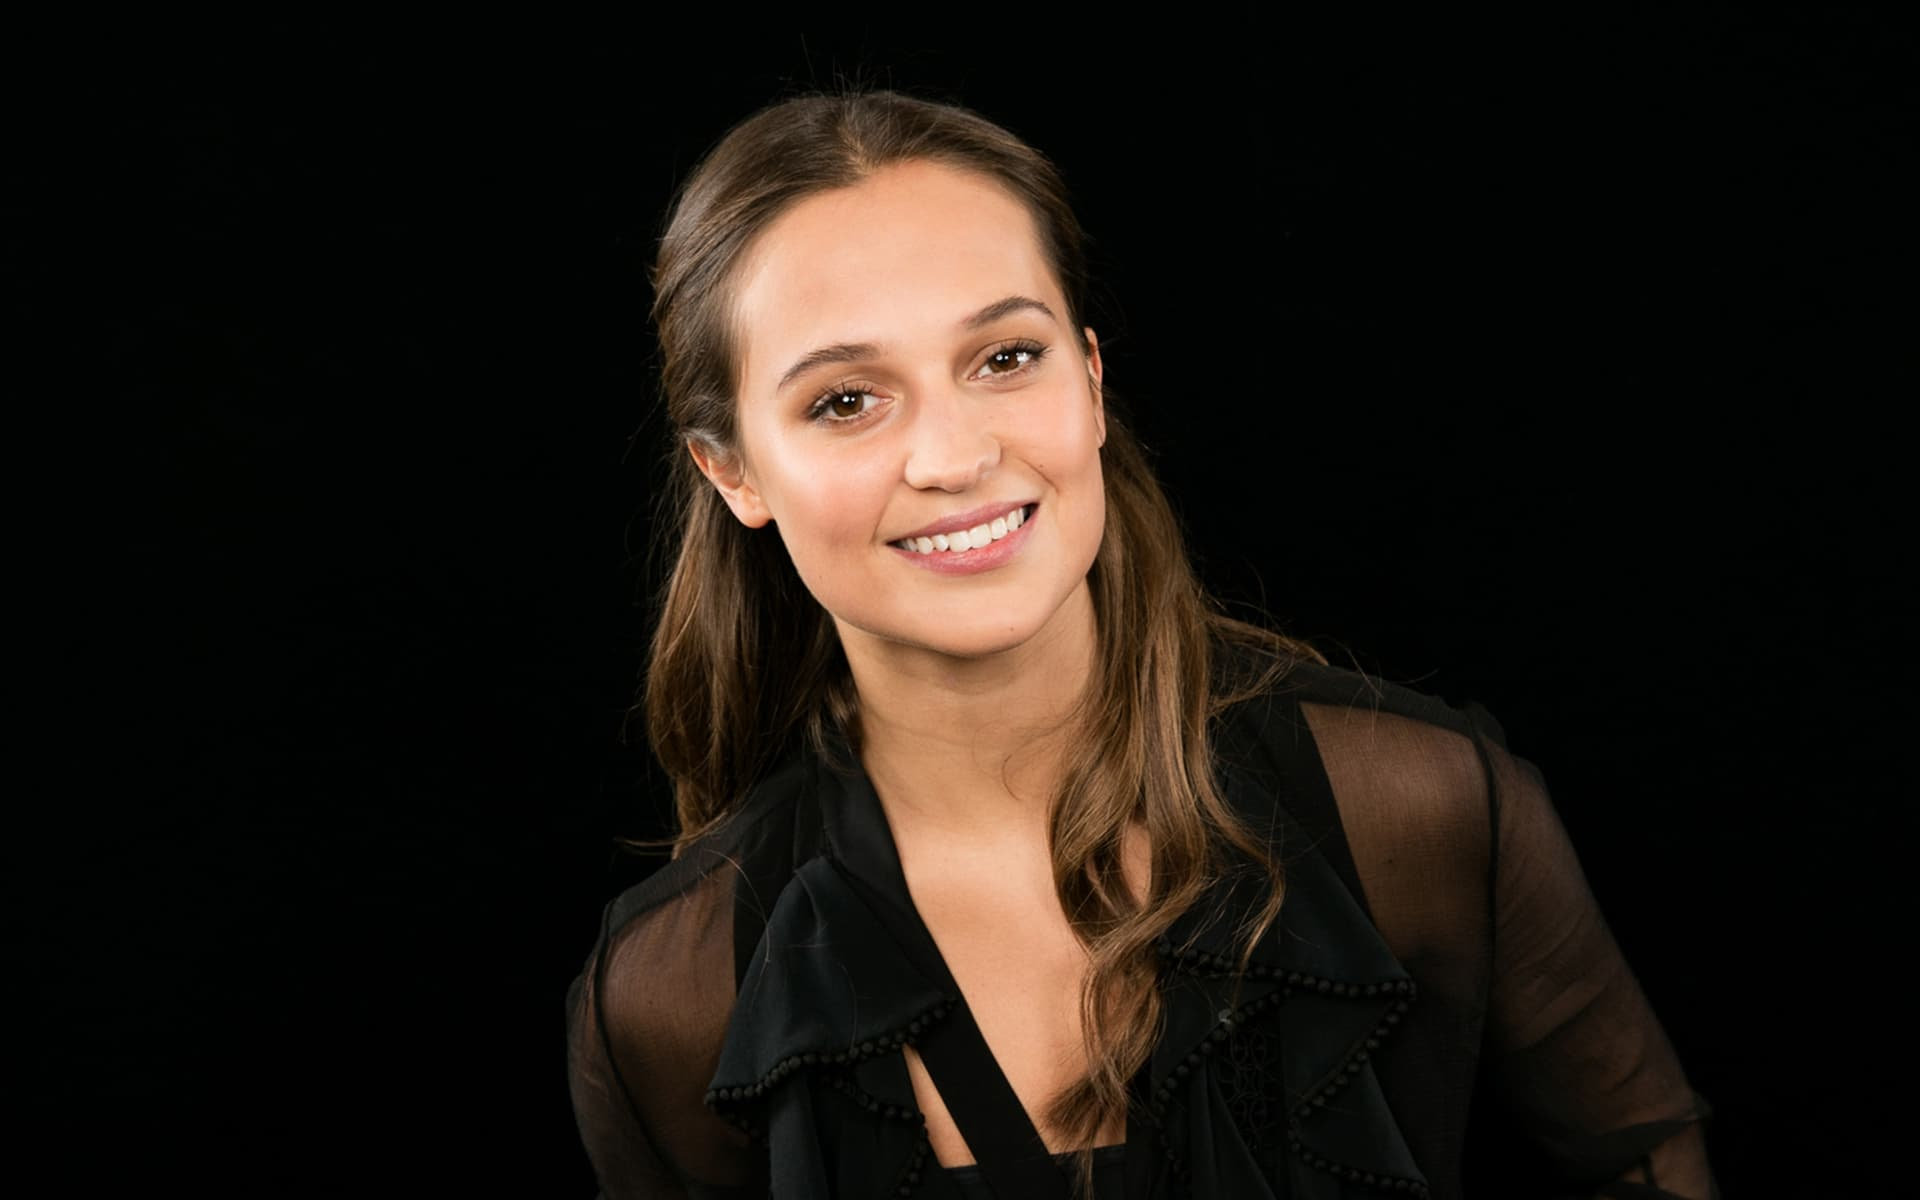 31 Alicia Vikander Wallpapers High Quality Resolution